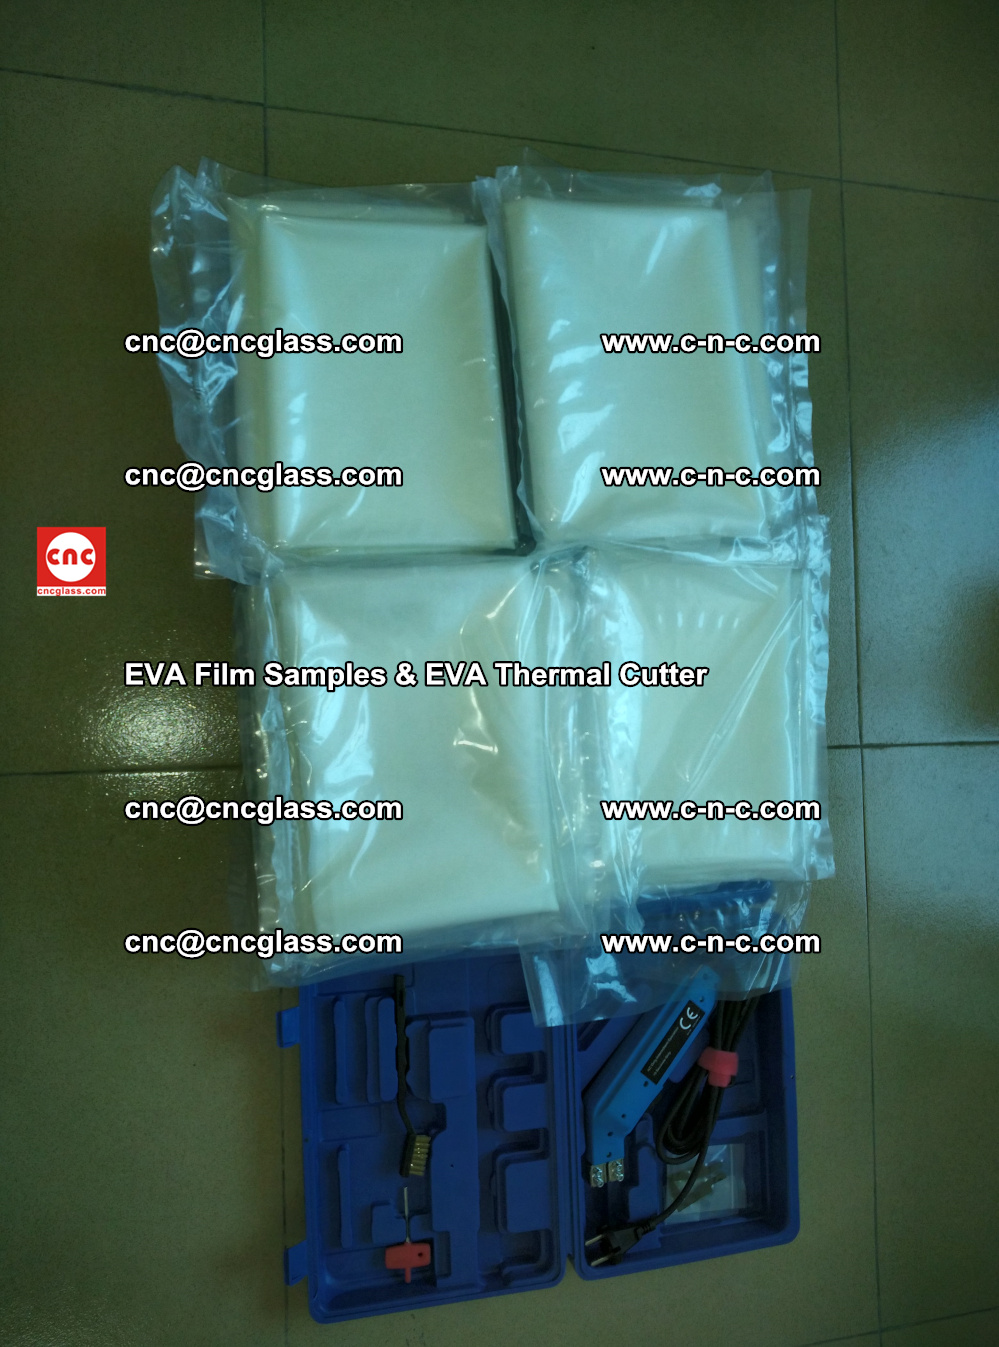 EVAFORCE SUPER CLEAR EVA Film Samples and EVA Thermal Cutter (38)